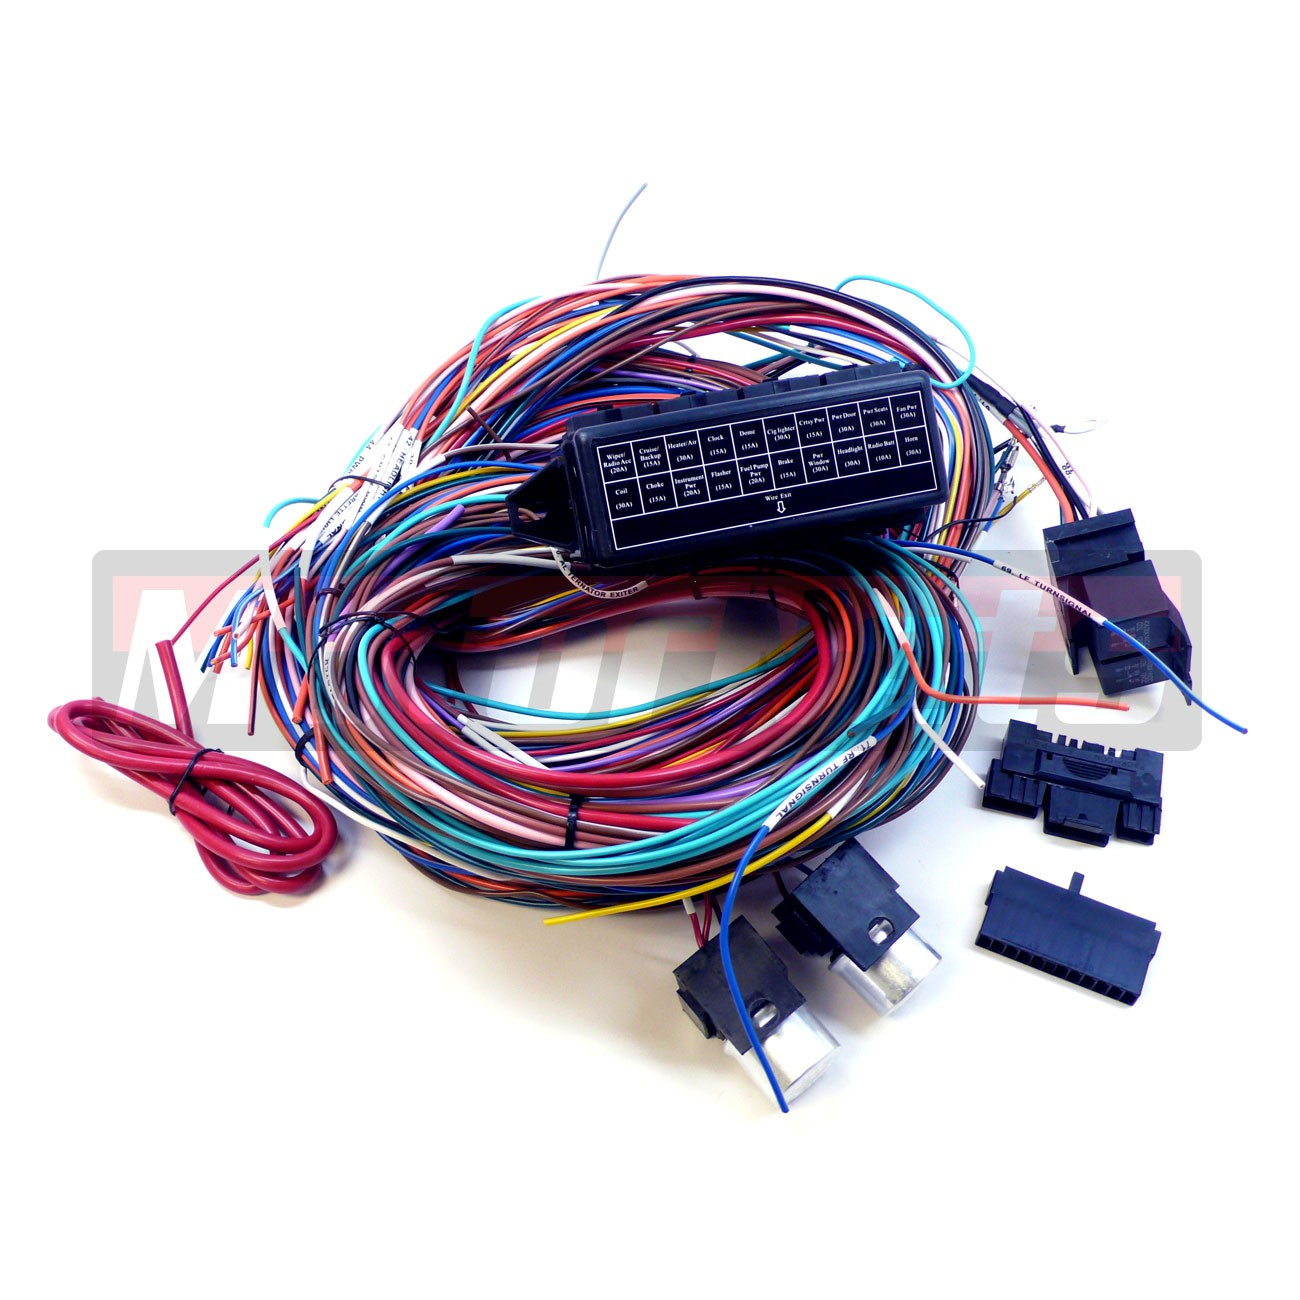 hight resolution of complete universal 12v 20 circuit 20 fuse wiring harness wire kit hot rod rat v8